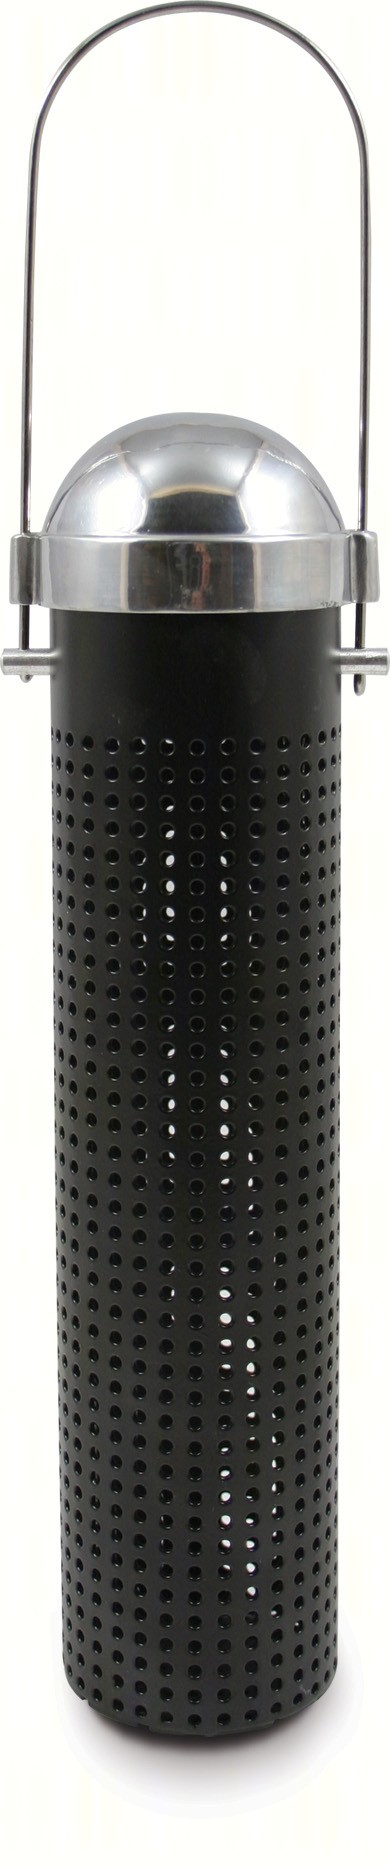 10 inch Metal Perforated Tube Finch Feeder